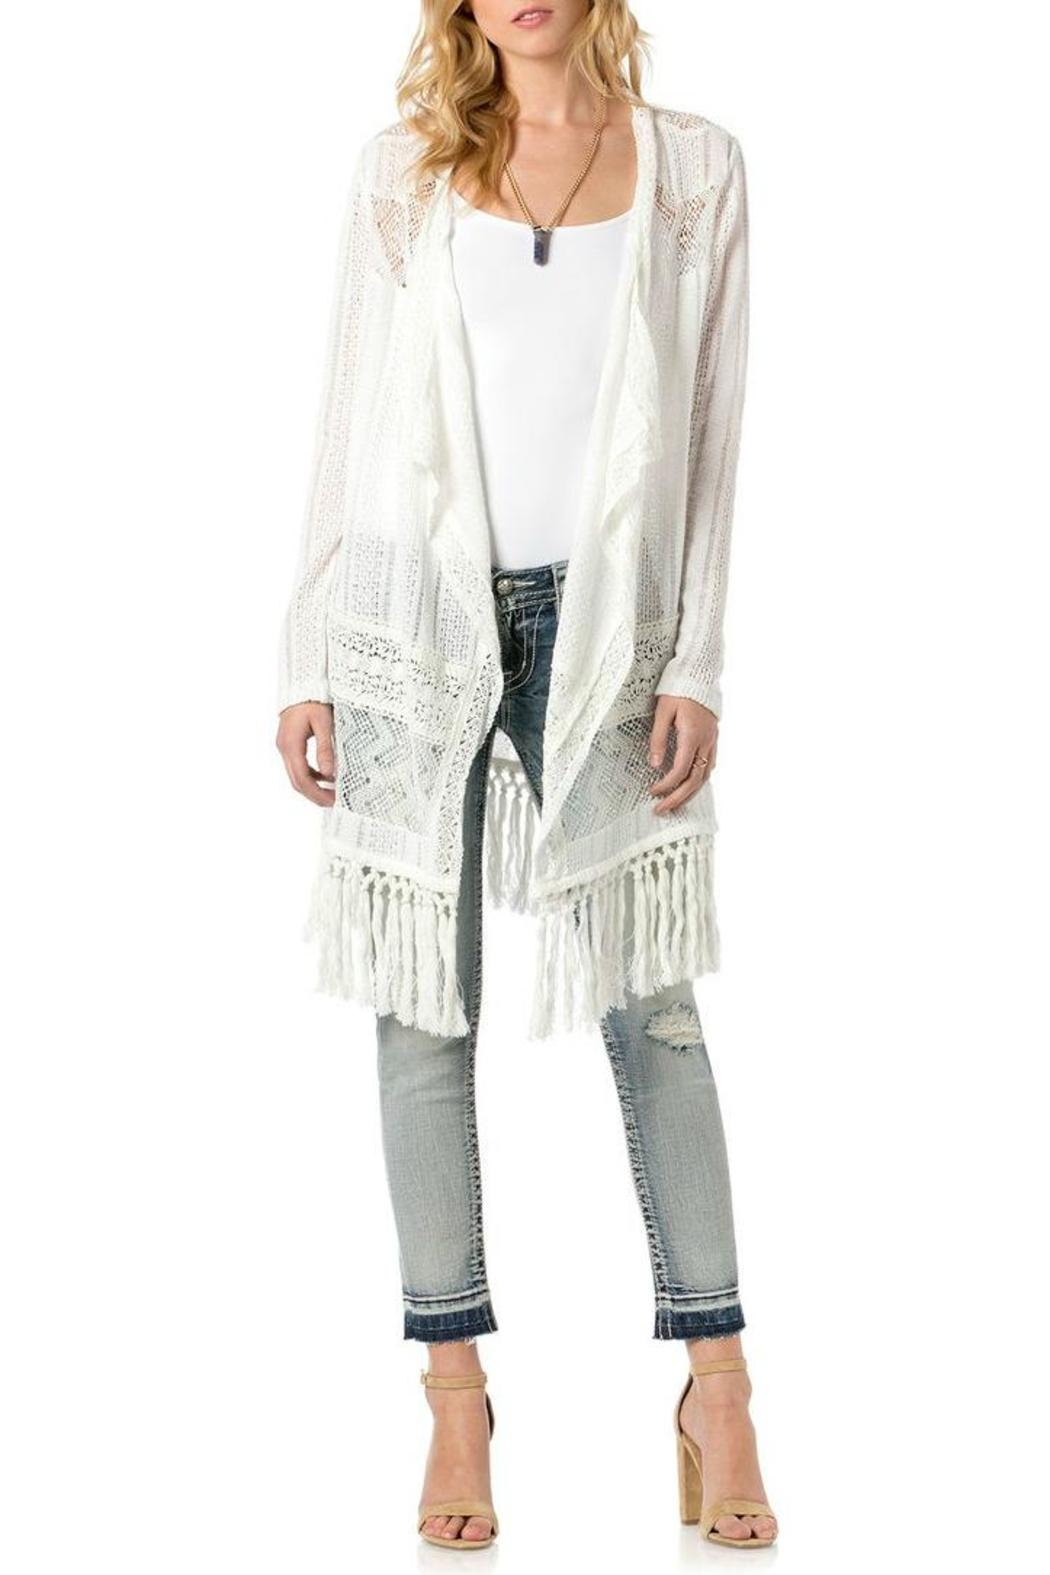 Miss Me White Fringe Cardigan - Front Cropped Image - Miss Me White Fringe Cardigan From North Shore By Assets Jean Co